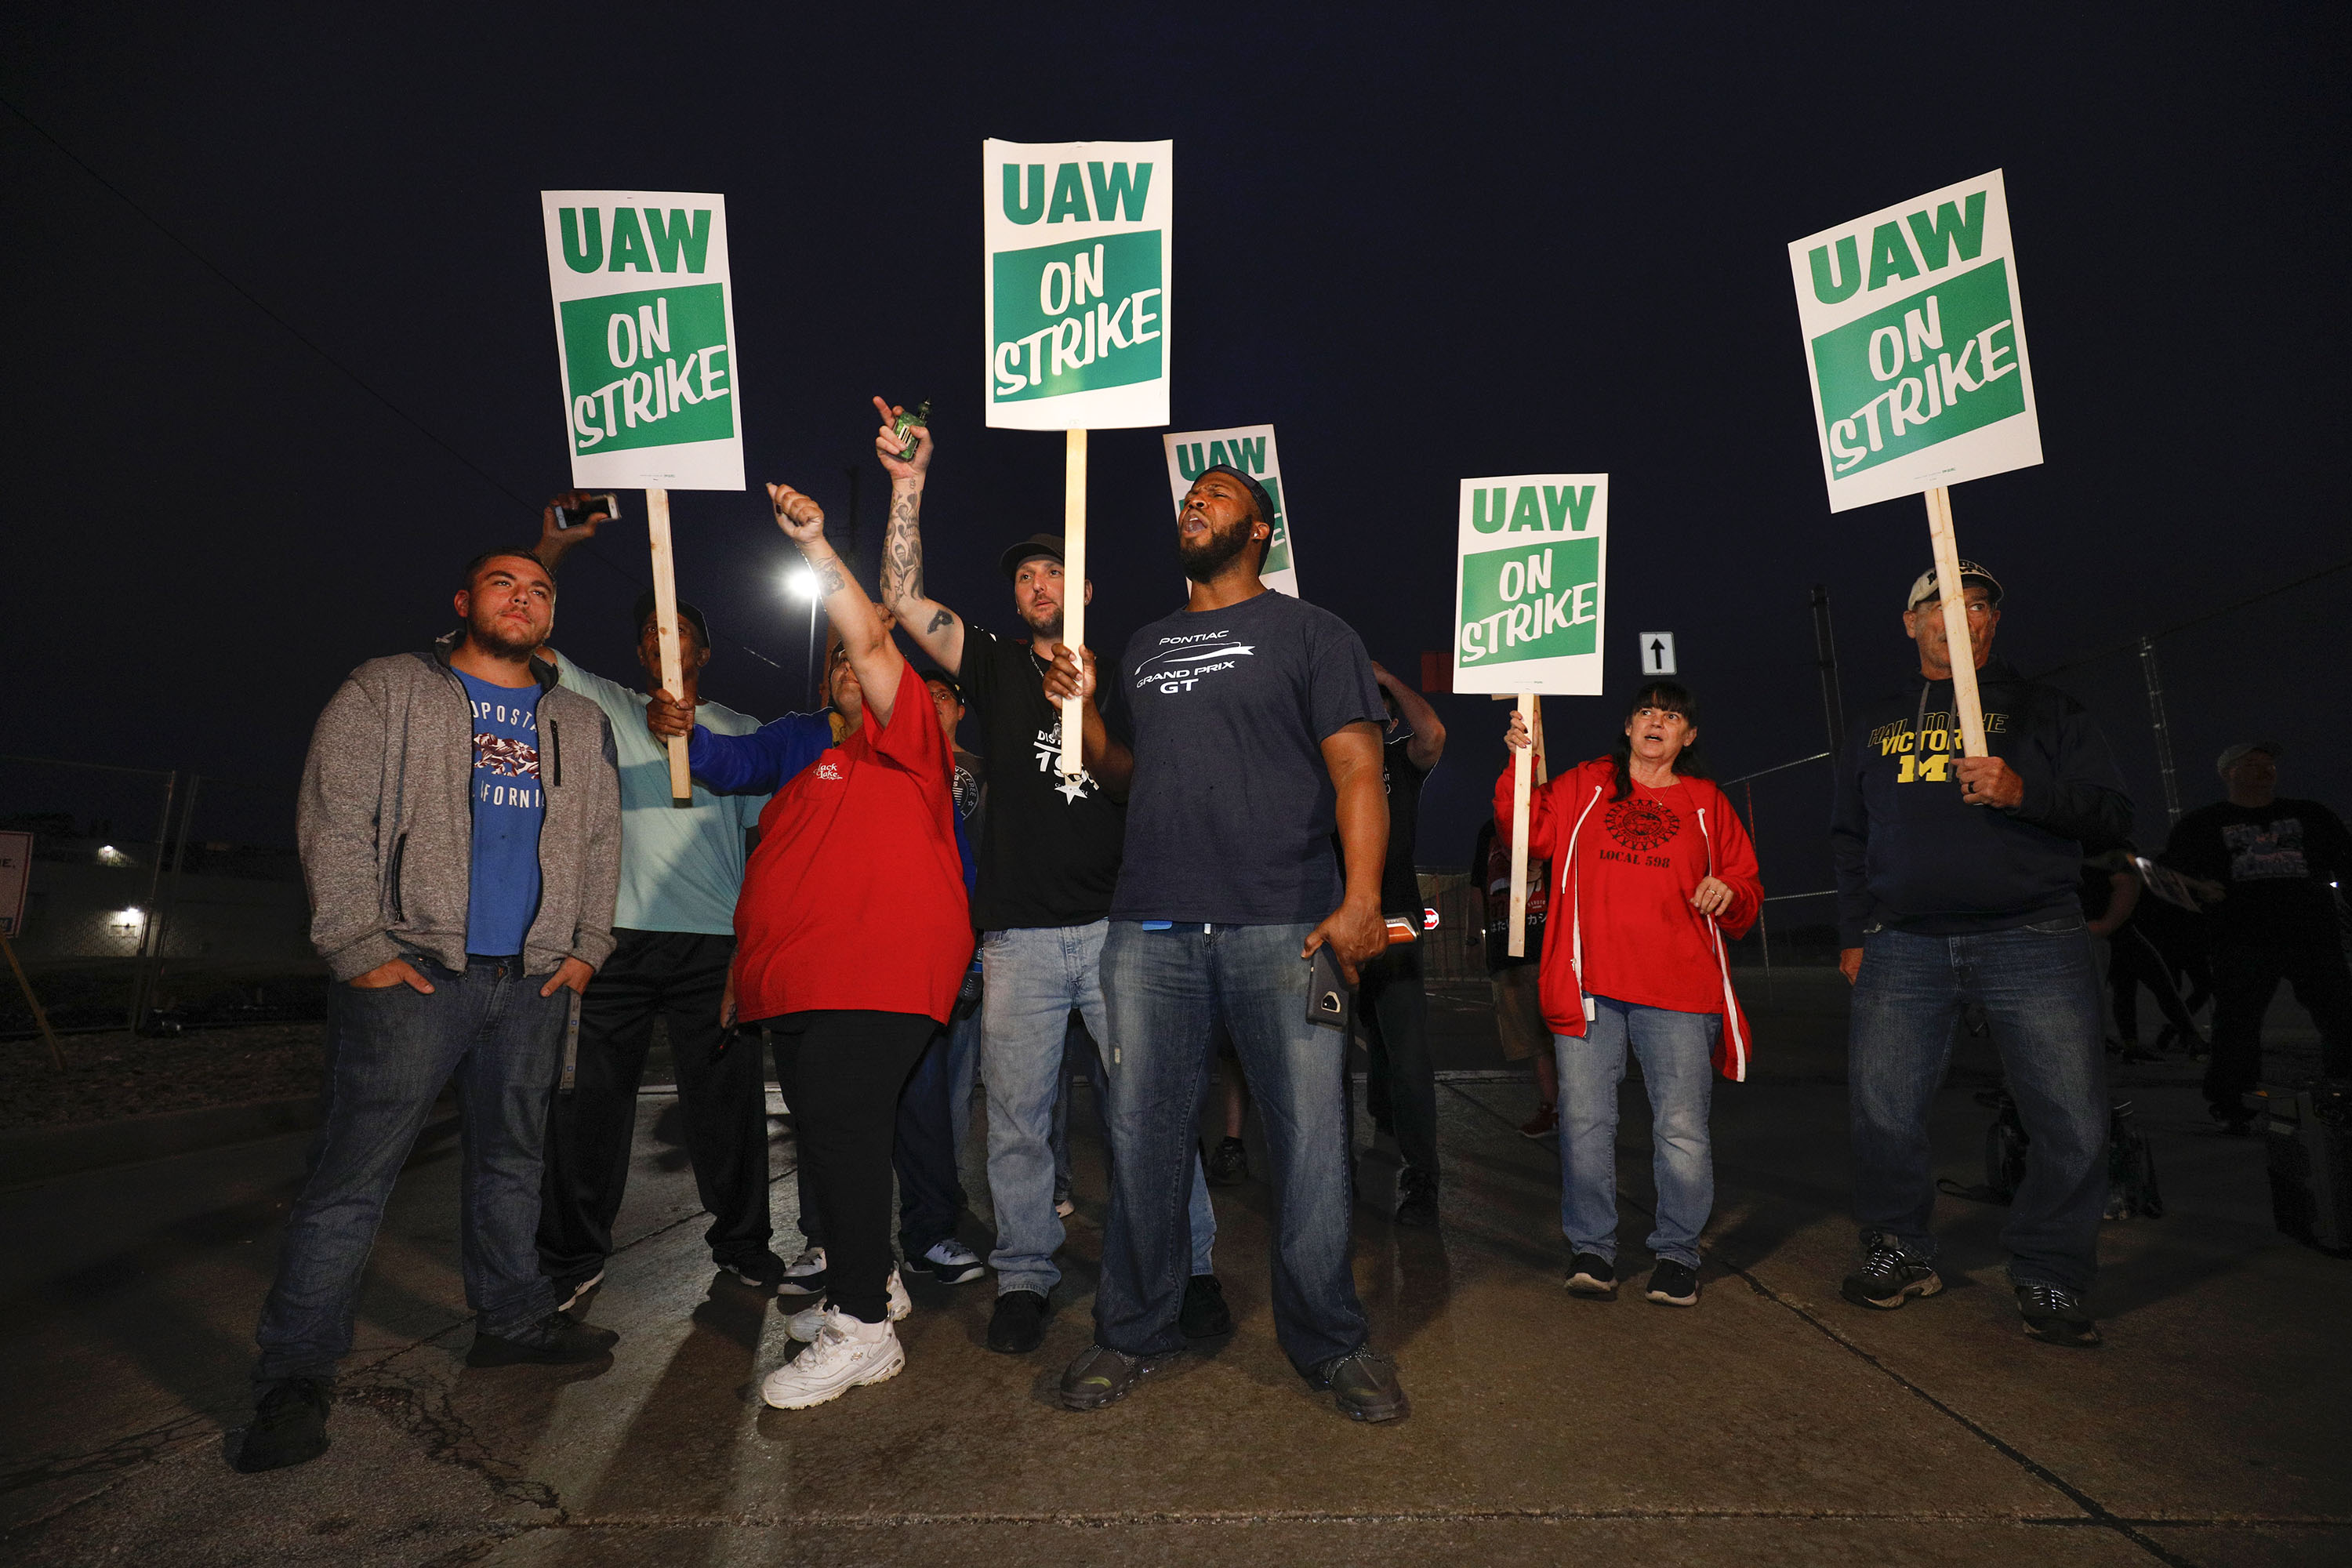 FLINT, MI - SEPTEMBER 16: United Auto Workers (UAW) members walk the picket line at the General Motors Flint Assembly Plant after the UAW declared a national strike against GM at midnight on September 16, 2019 in Flint, Michigan. It is the first national strike the UAW has declared since 1982.